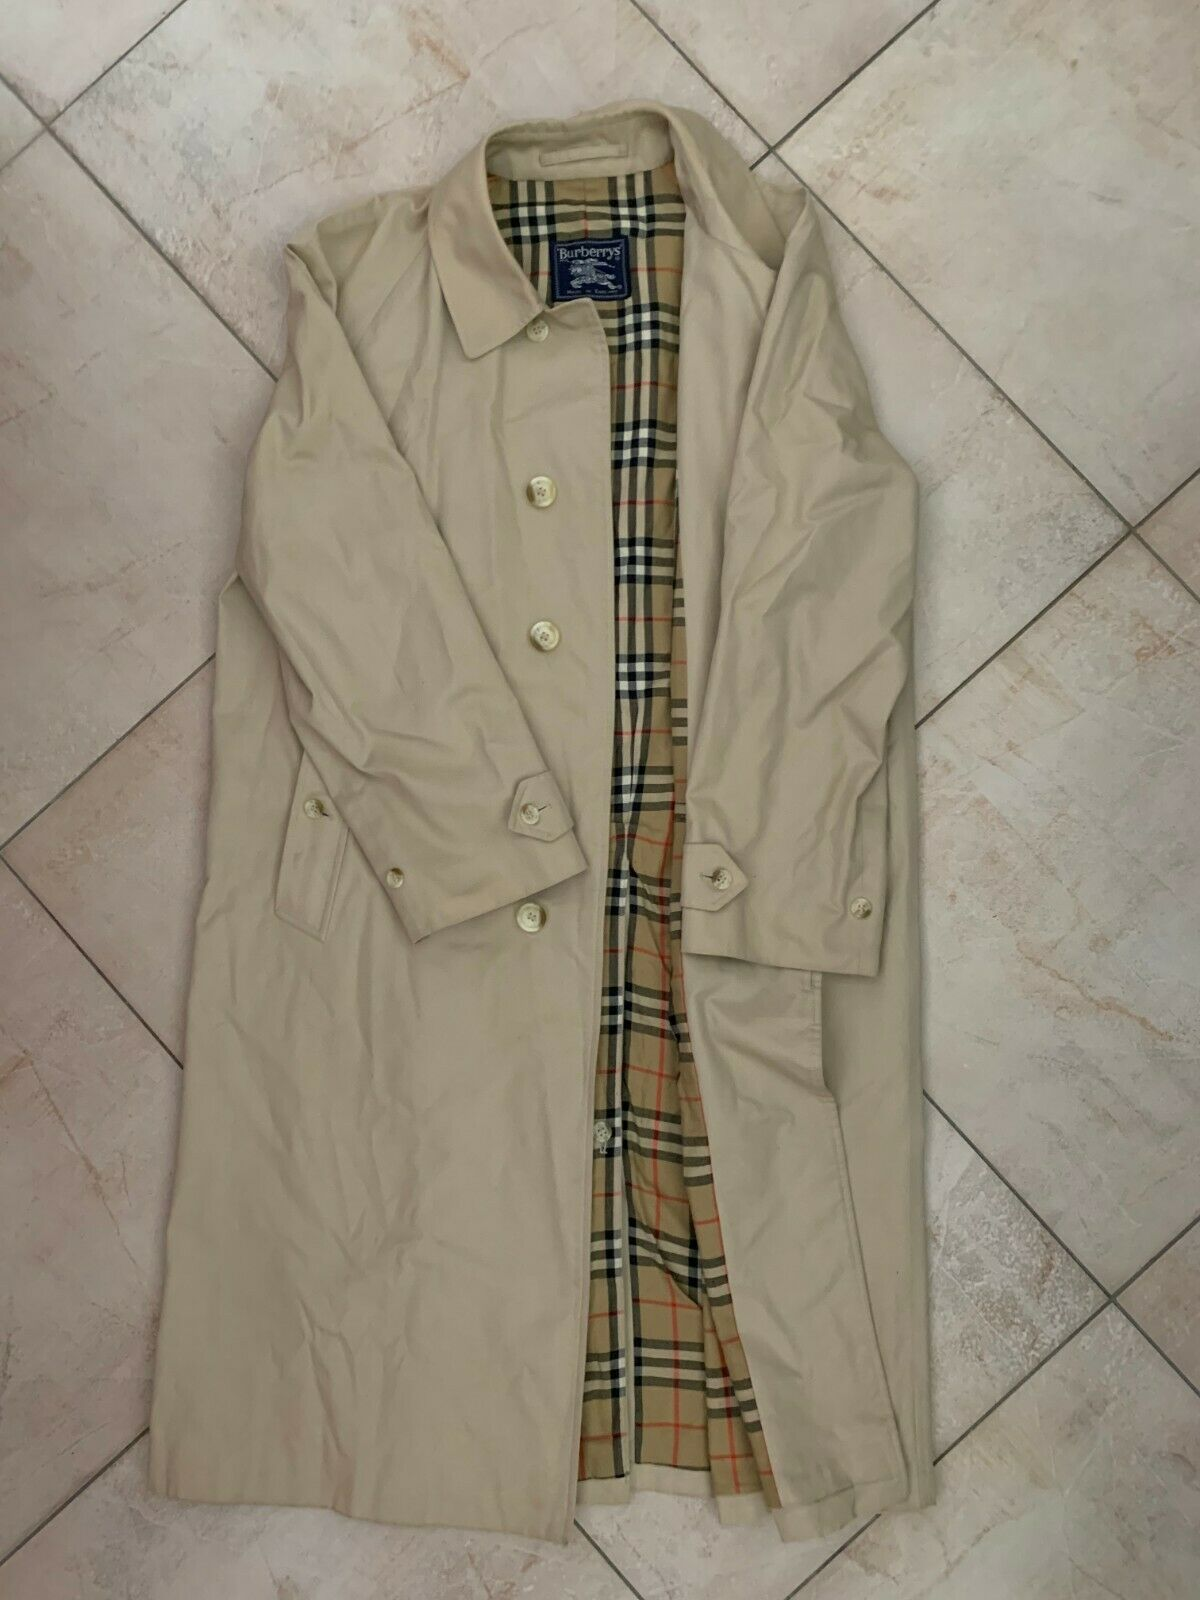 Burberry trench-coat/imperméable vintage 80's size/taile 52